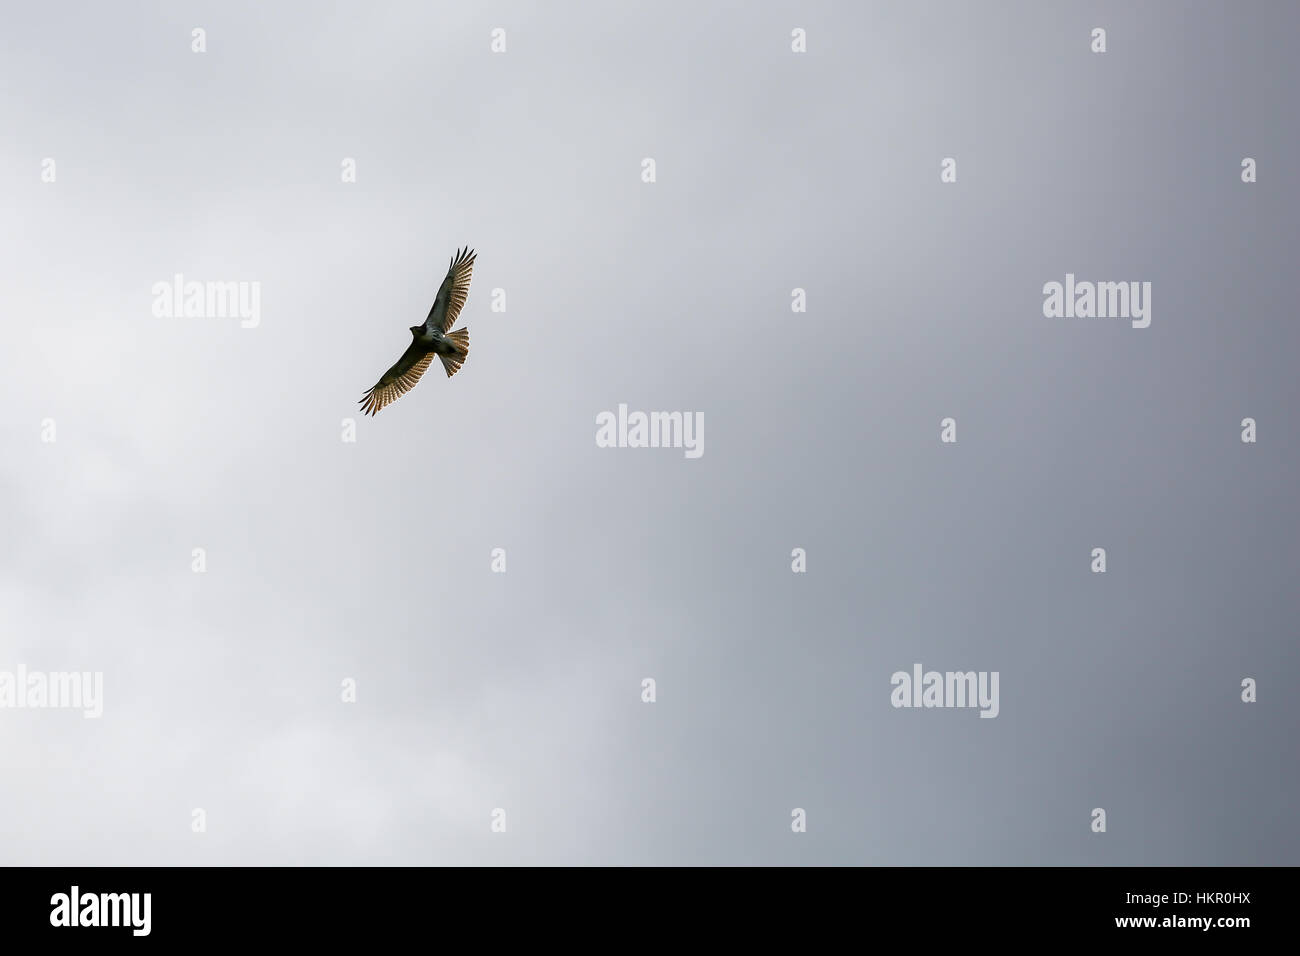 Red-tailed Hawk  (Buteo jamaicensis) soaring high in a gray sky. - Stock Image